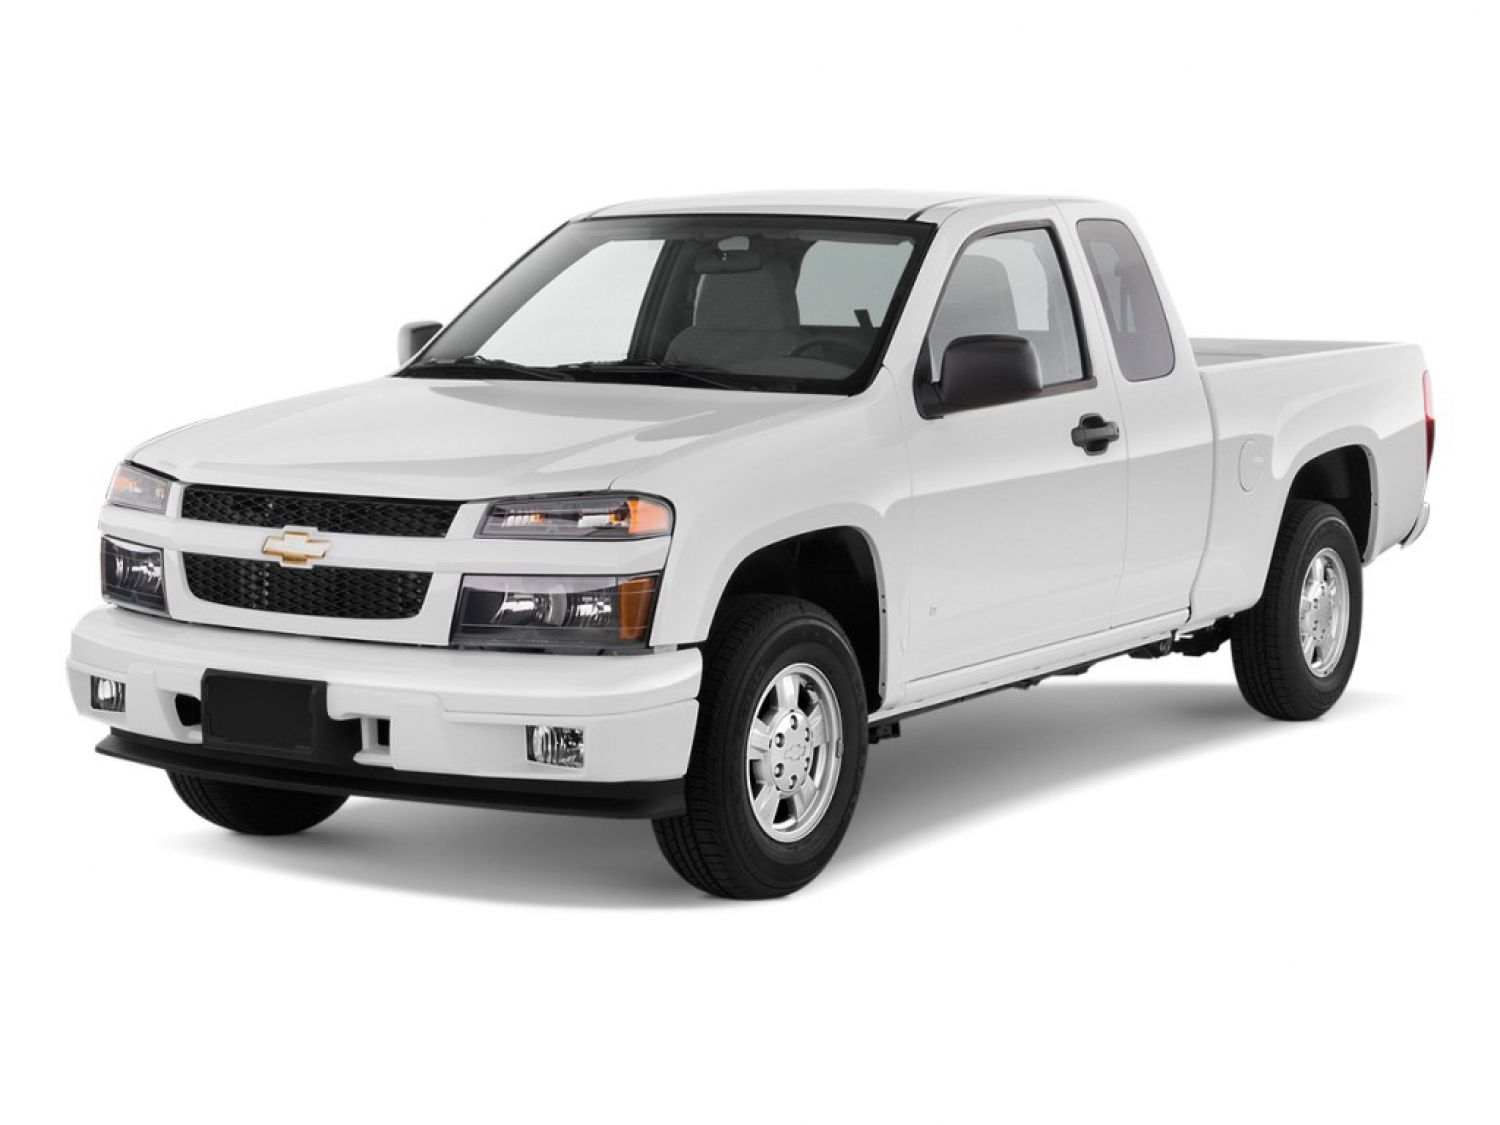 Best Small Truck On The Market Pickup Check More At Http